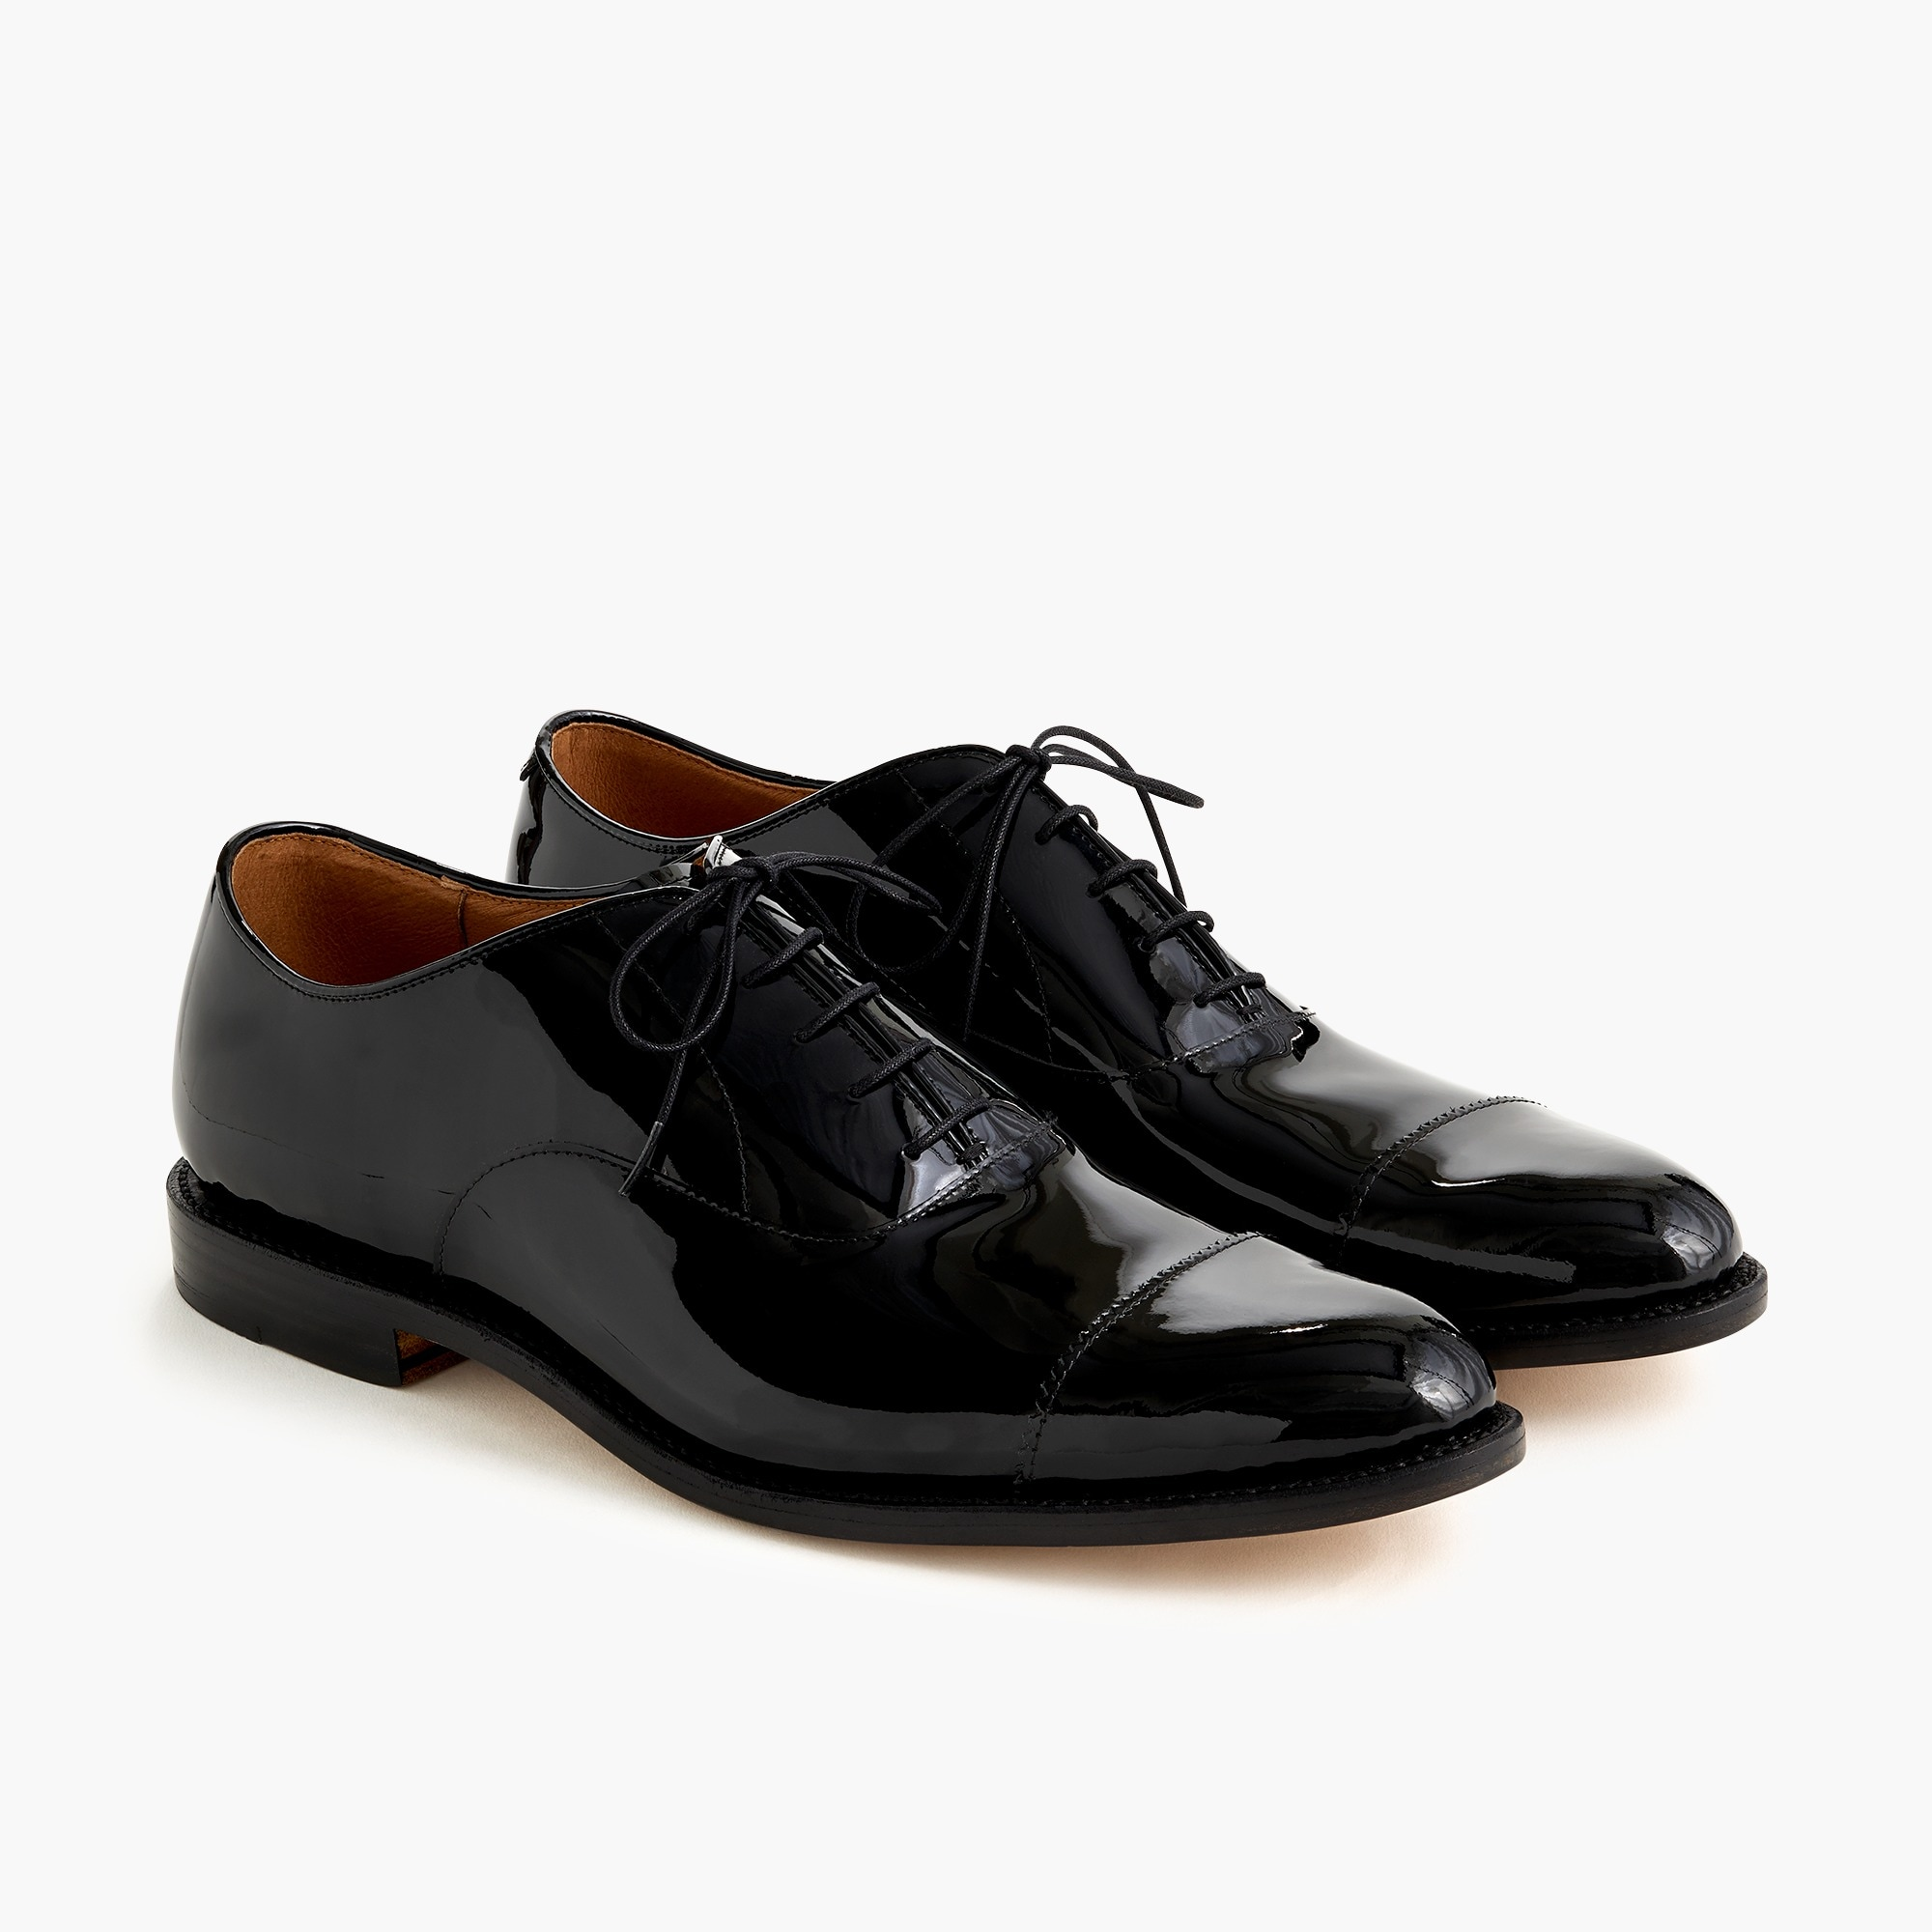 mens Cap-toe oxfords in patent leather